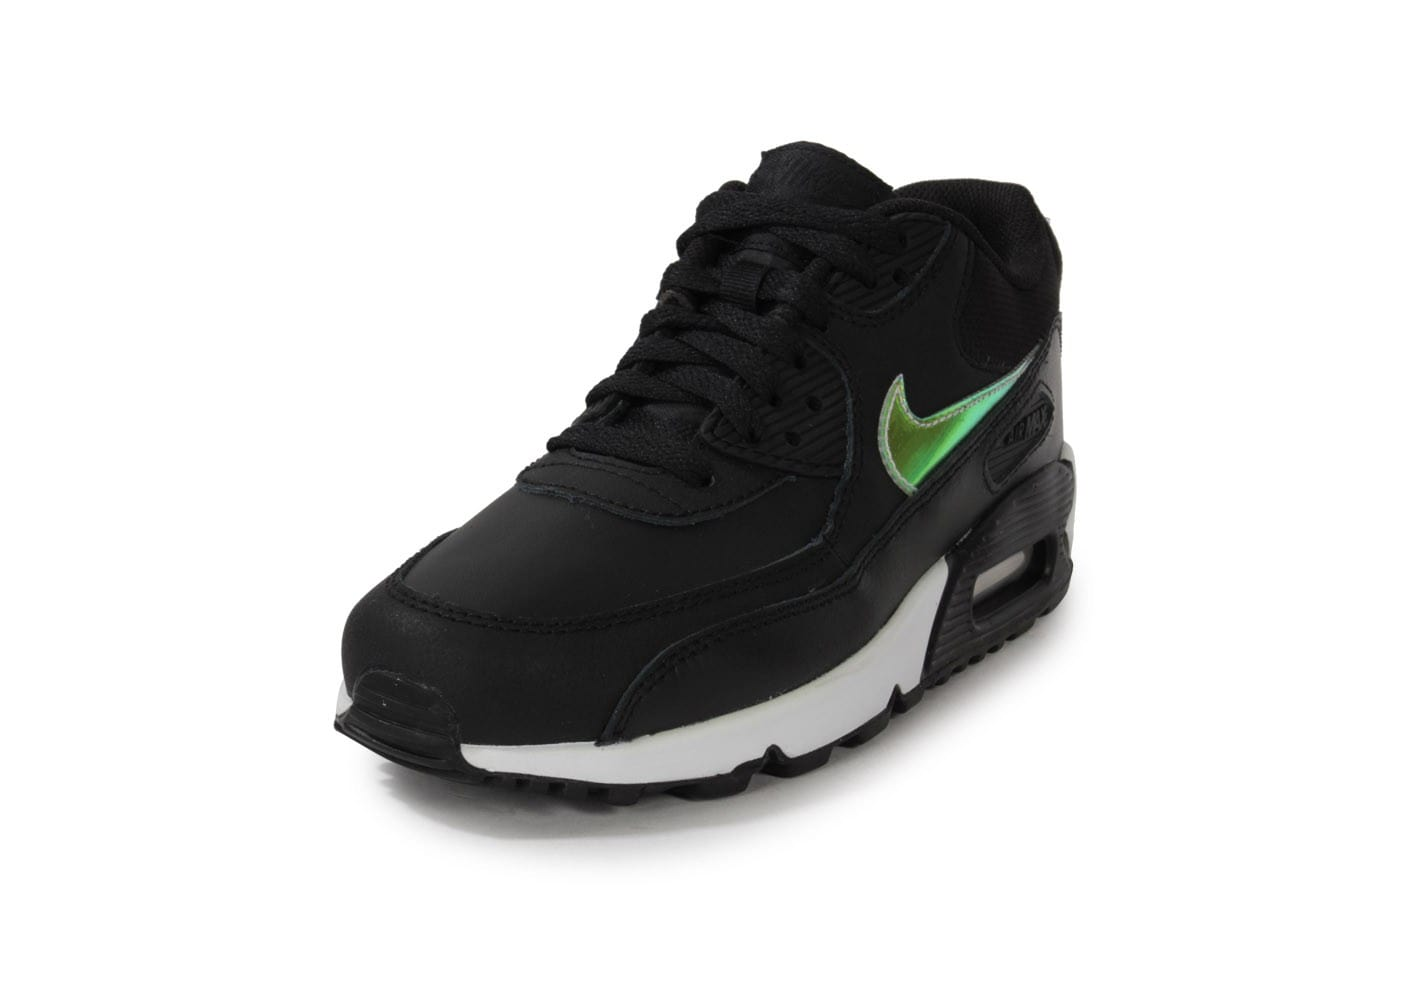 hot sale online a82fa 58cea Chaussures Nike Air Max 90 Noir Iridescent Junior vue avant . ...